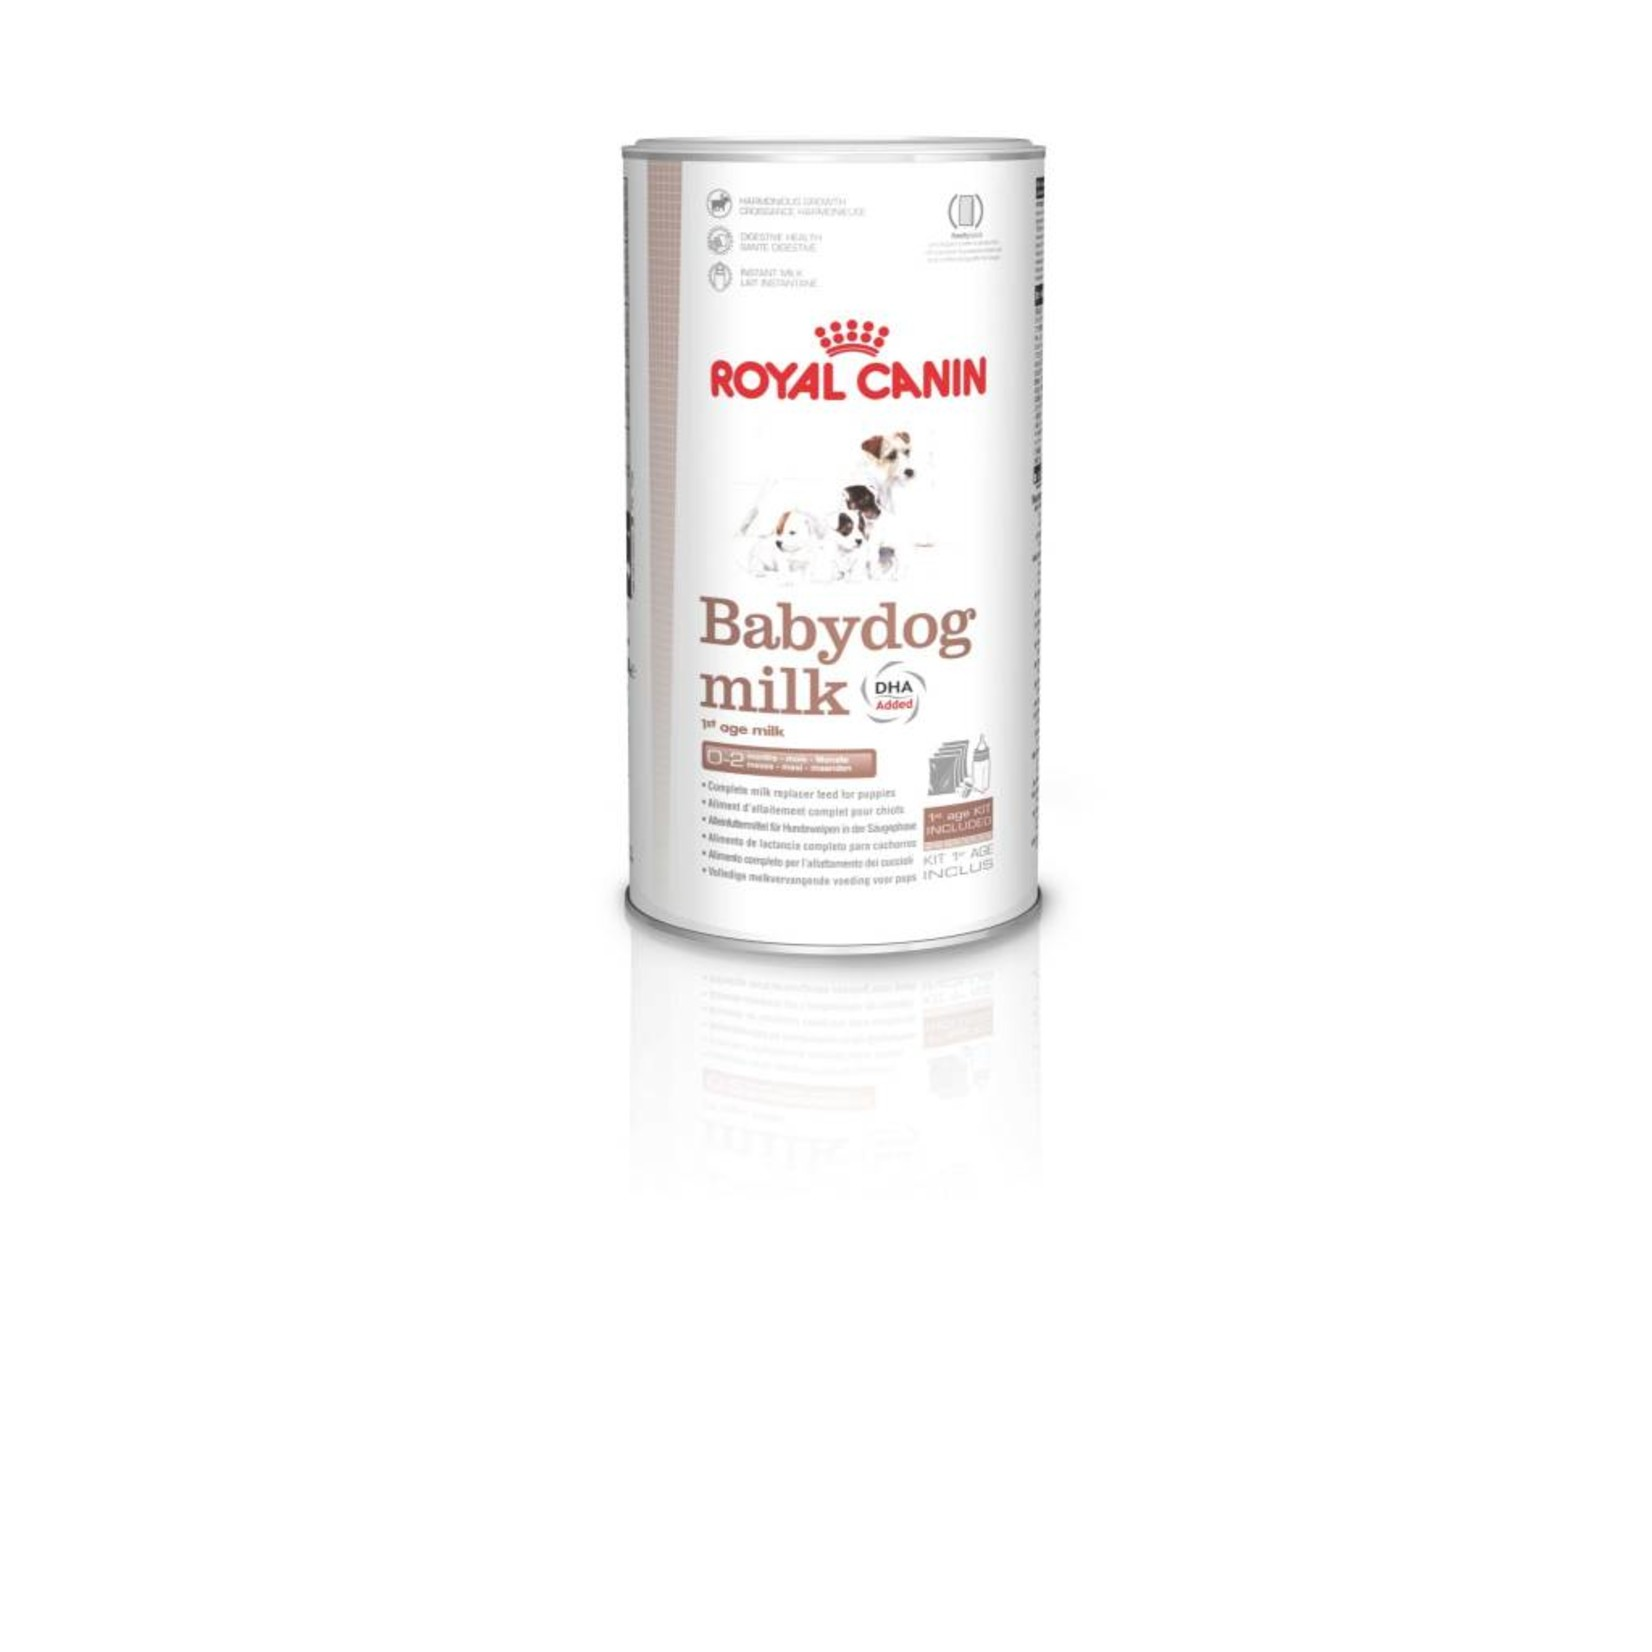 Royal Canin Babydog Milk replacer for Puppies, 400g